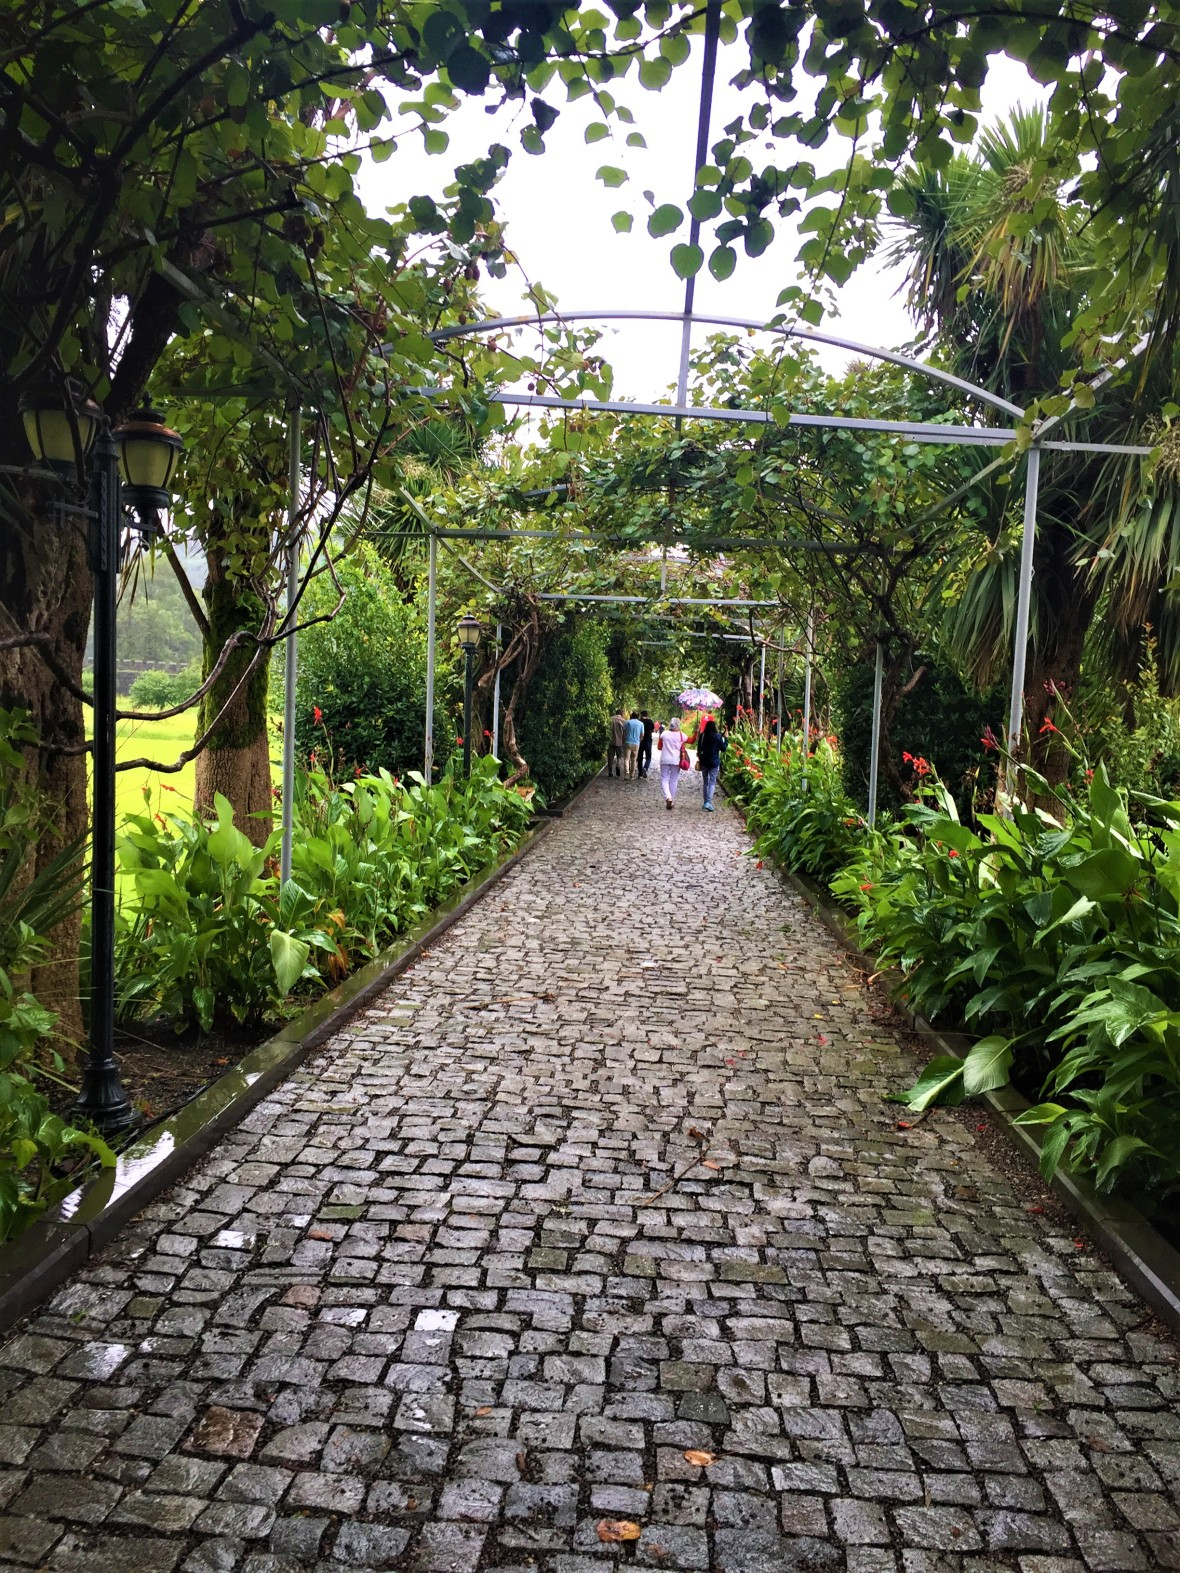 Pathway from the Gate towards the main area